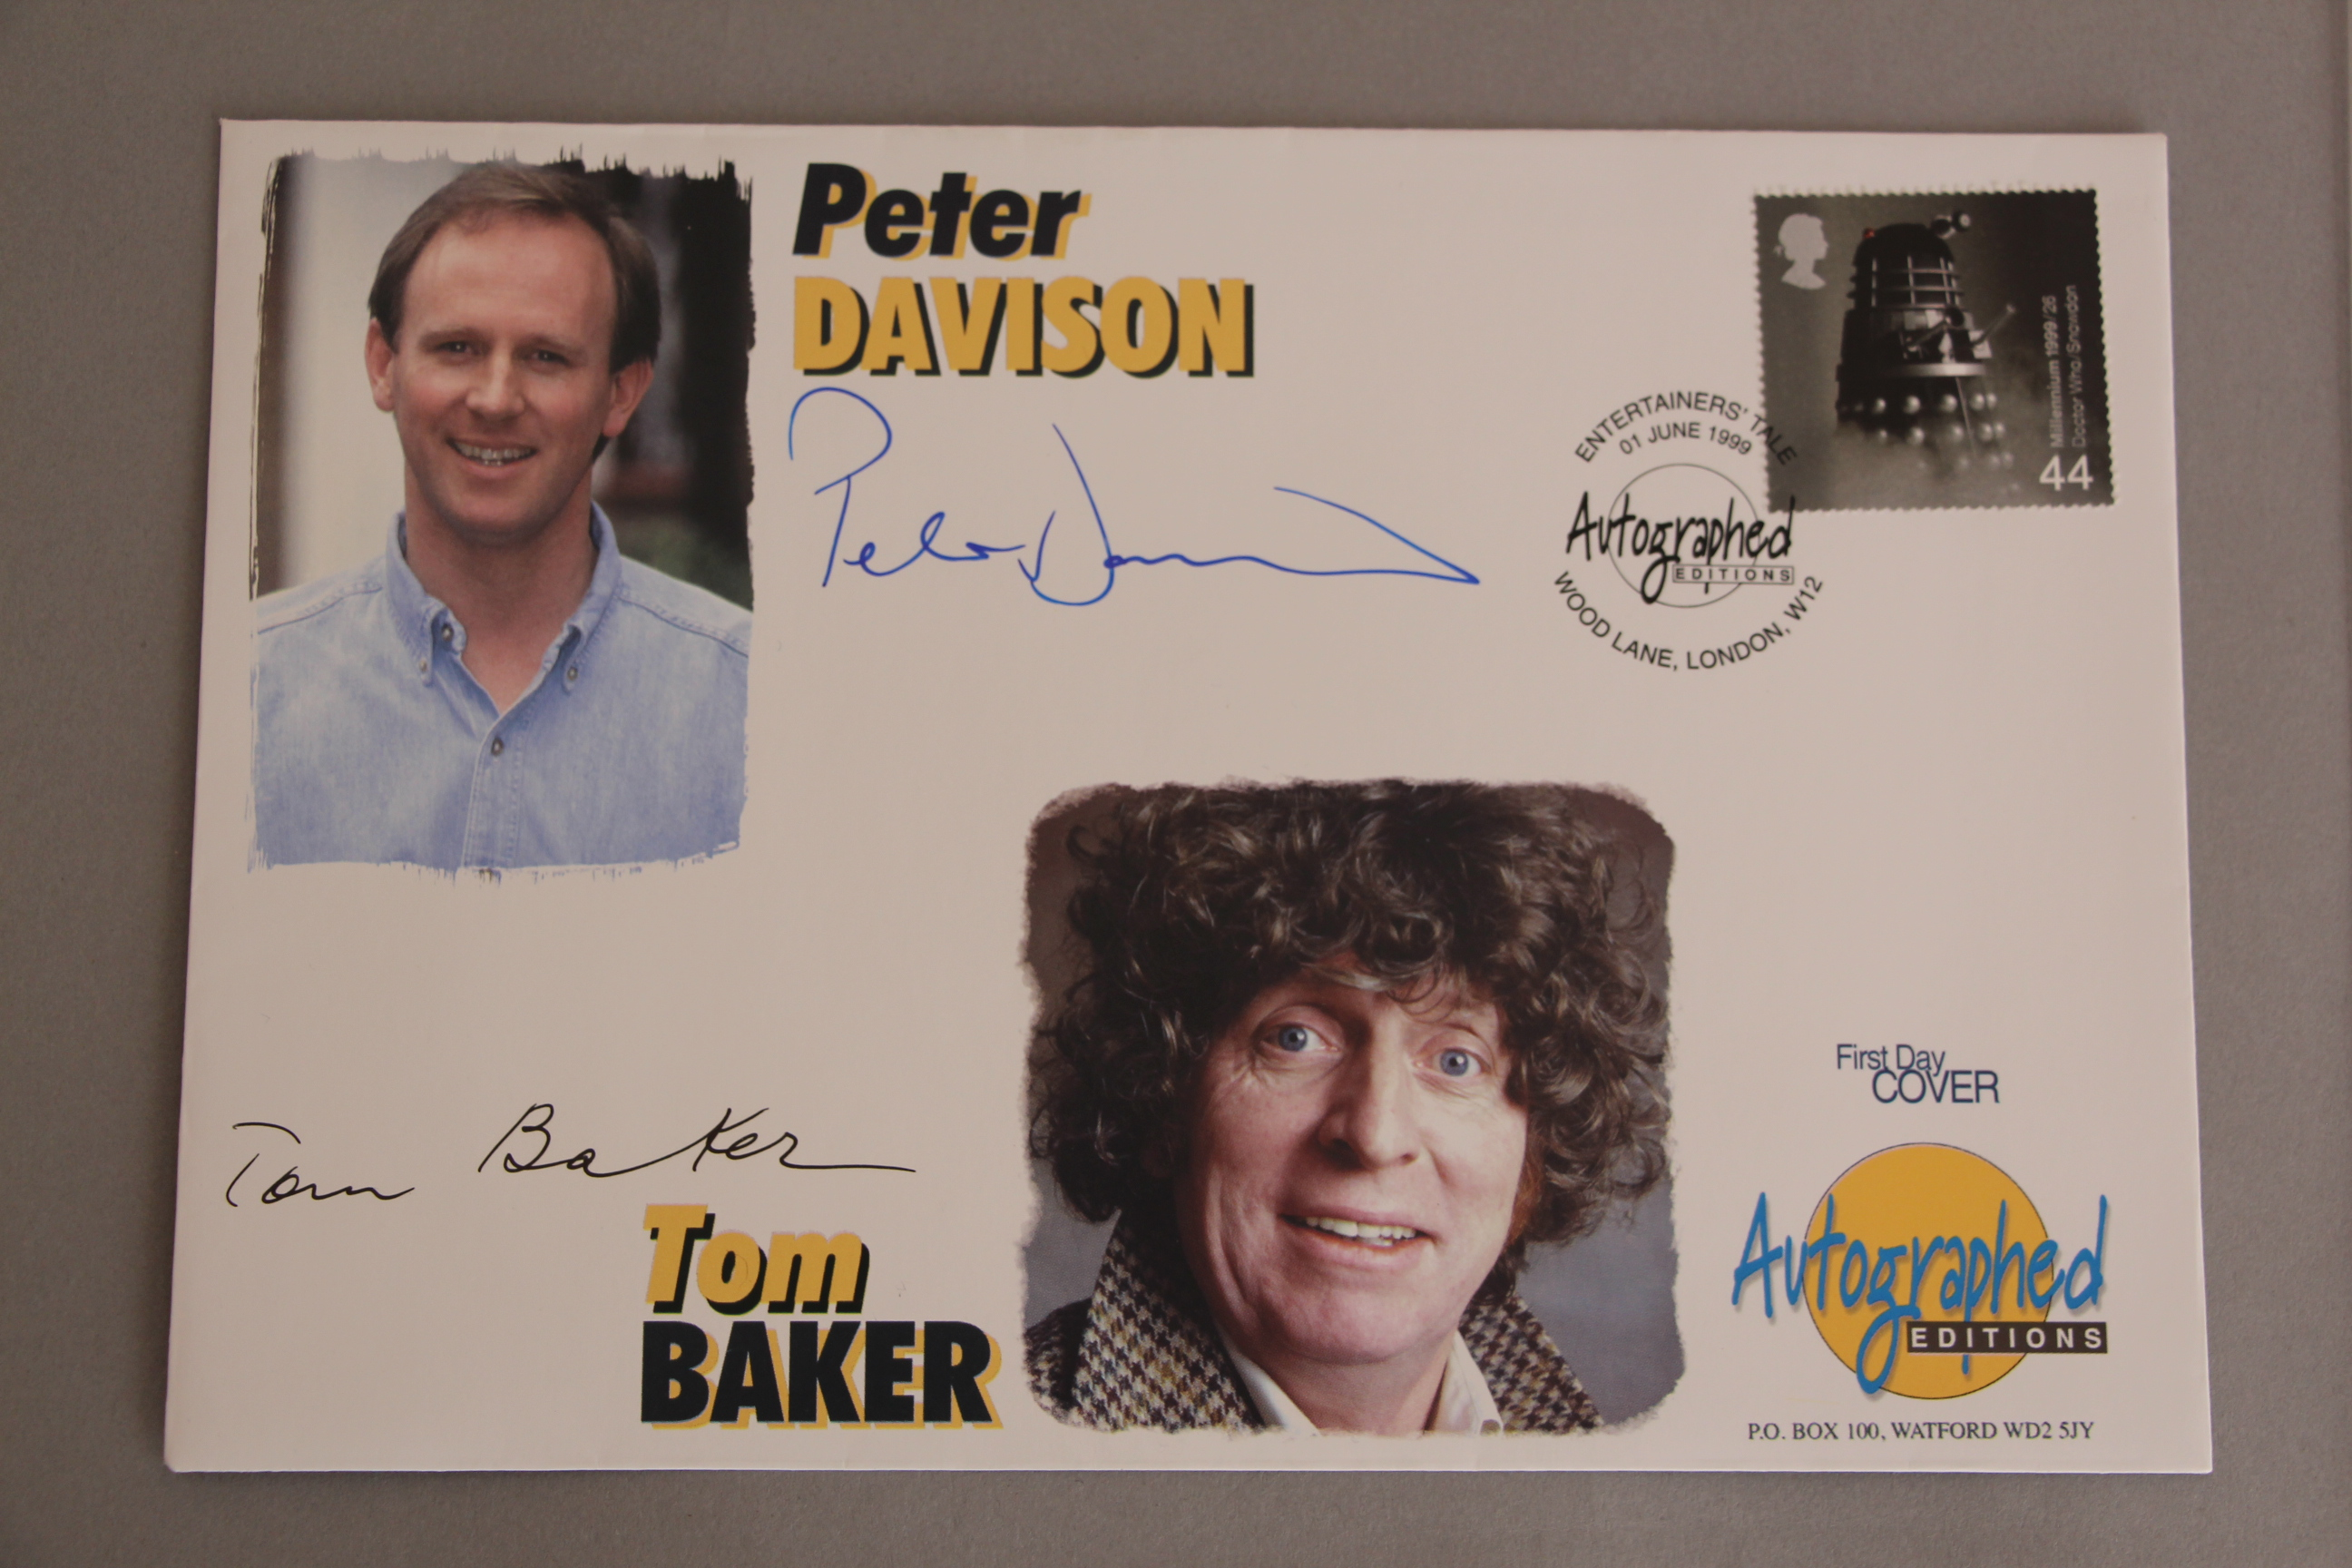 Lot 150 - Doctor Who Actors Tom Baker and Peter Davison First Day Cover stamps signed by the two actors and